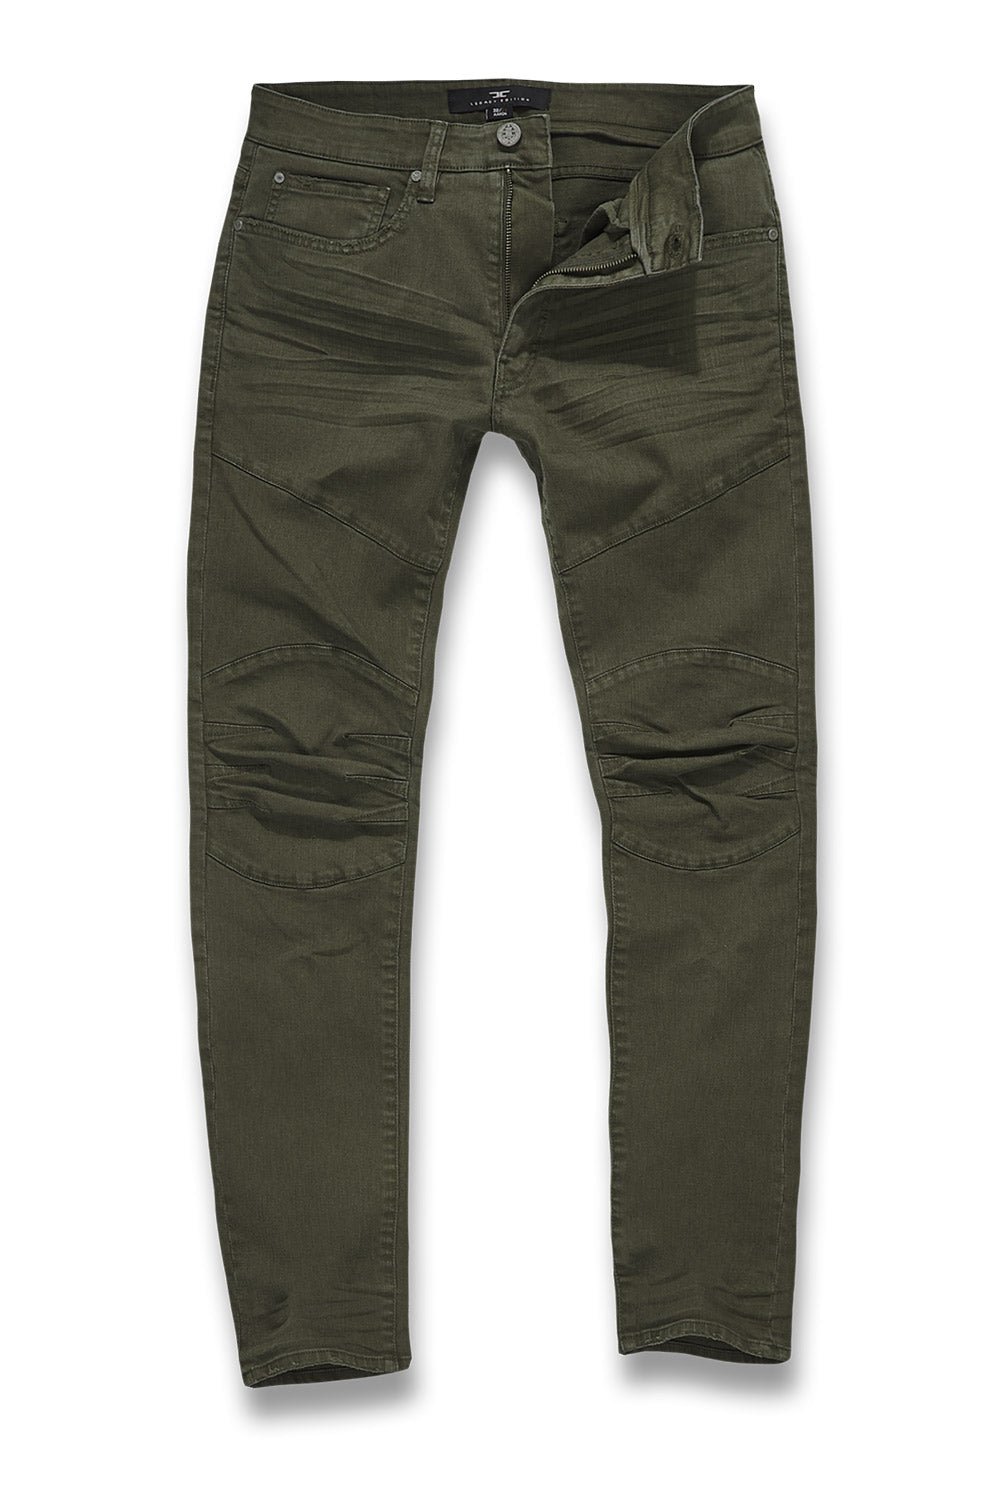 Jordan Craig - Aaron - Lexington Moto Denim (Army Green)